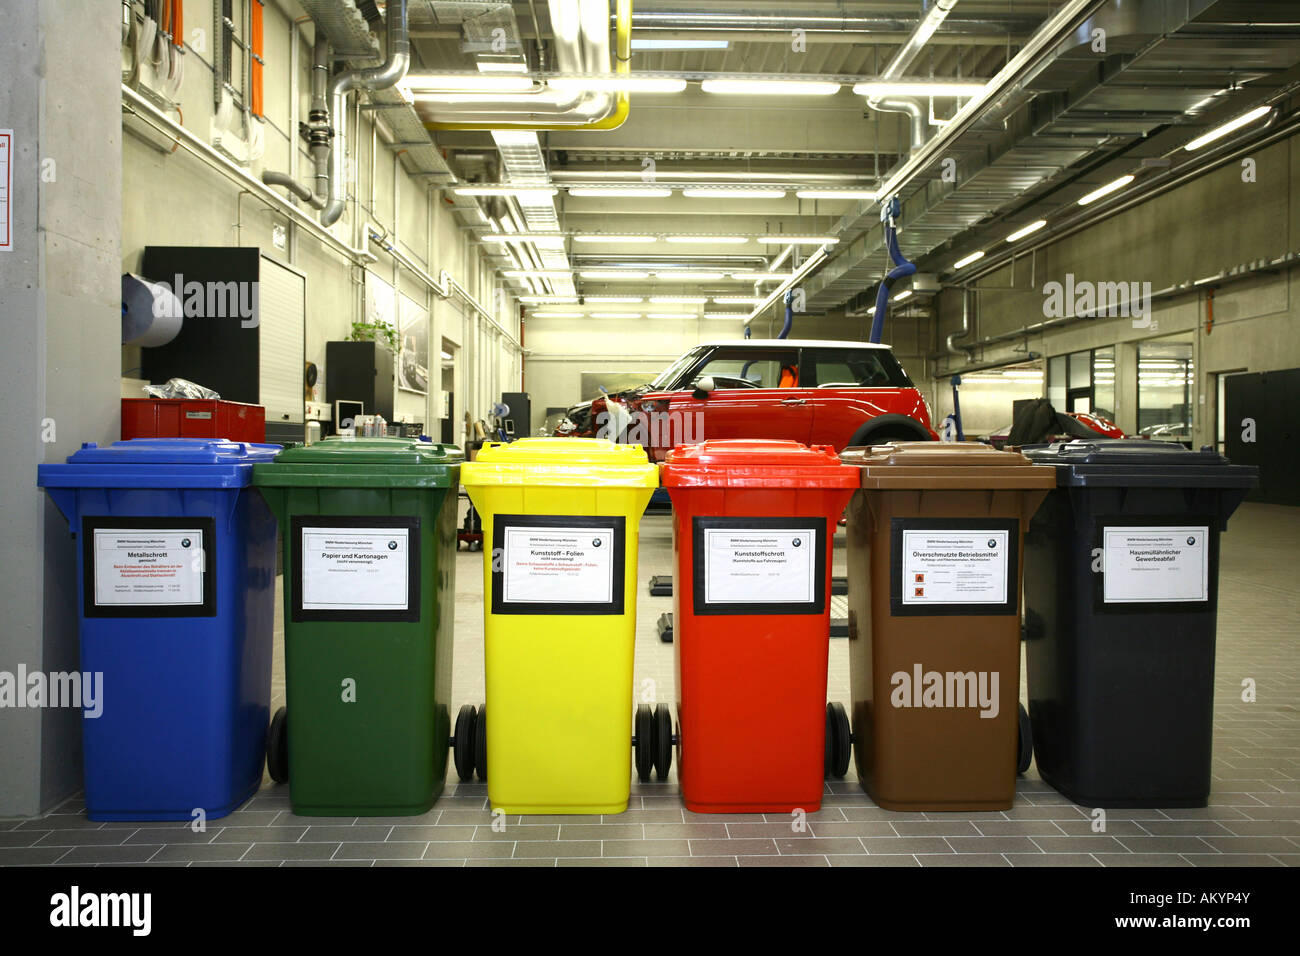 Mülleimer Garage Recycling Containers In A Garage Stock Photo 15101018 Alamy